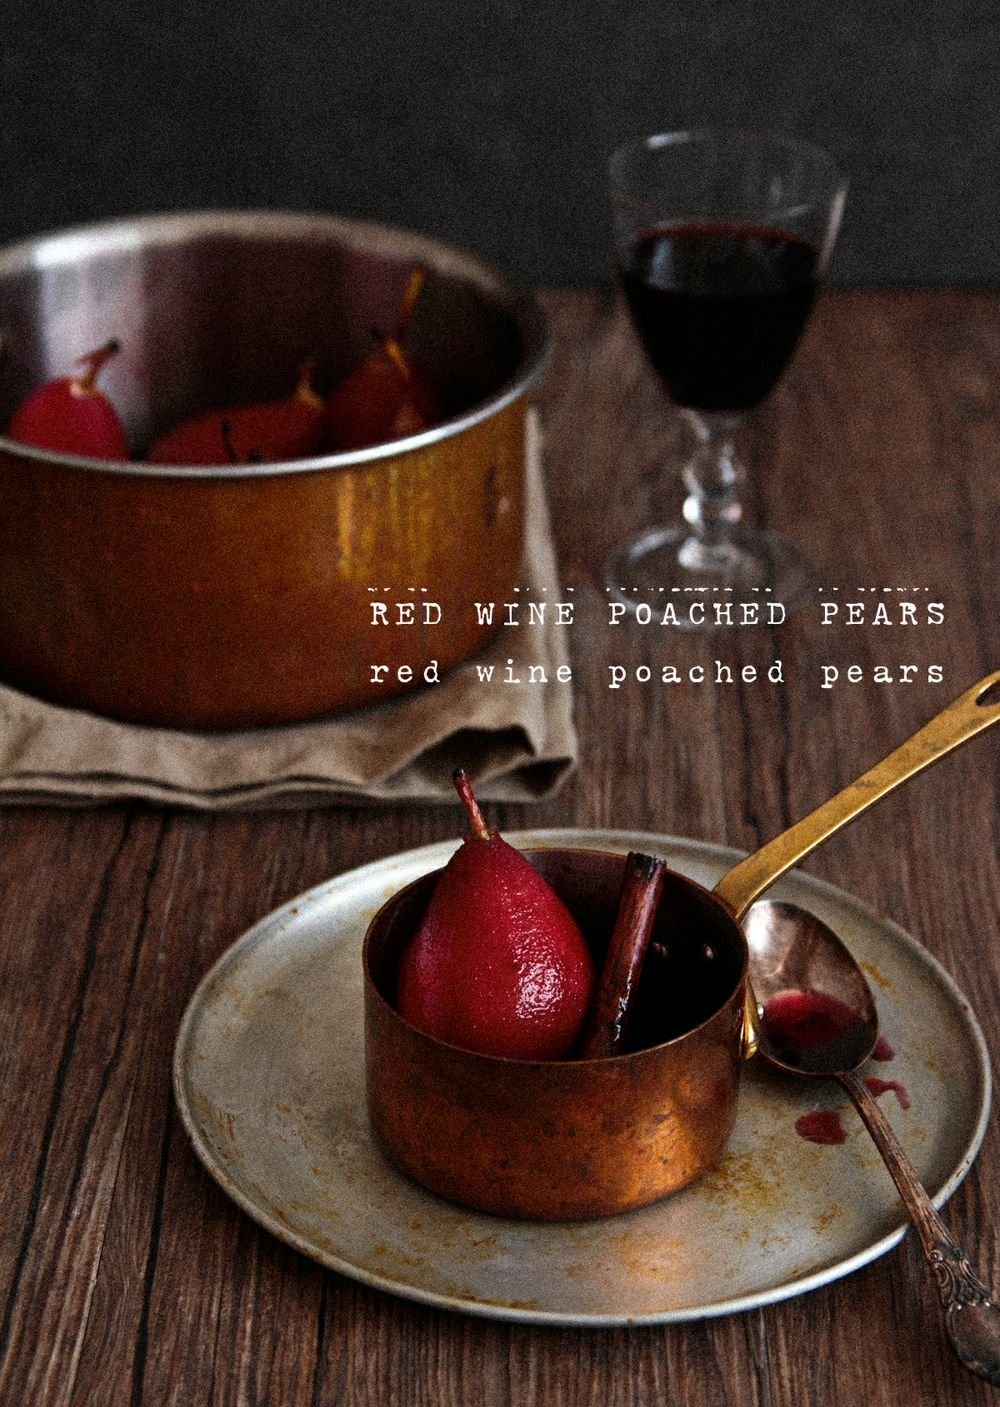 m-red-wine-poached-pears-1-